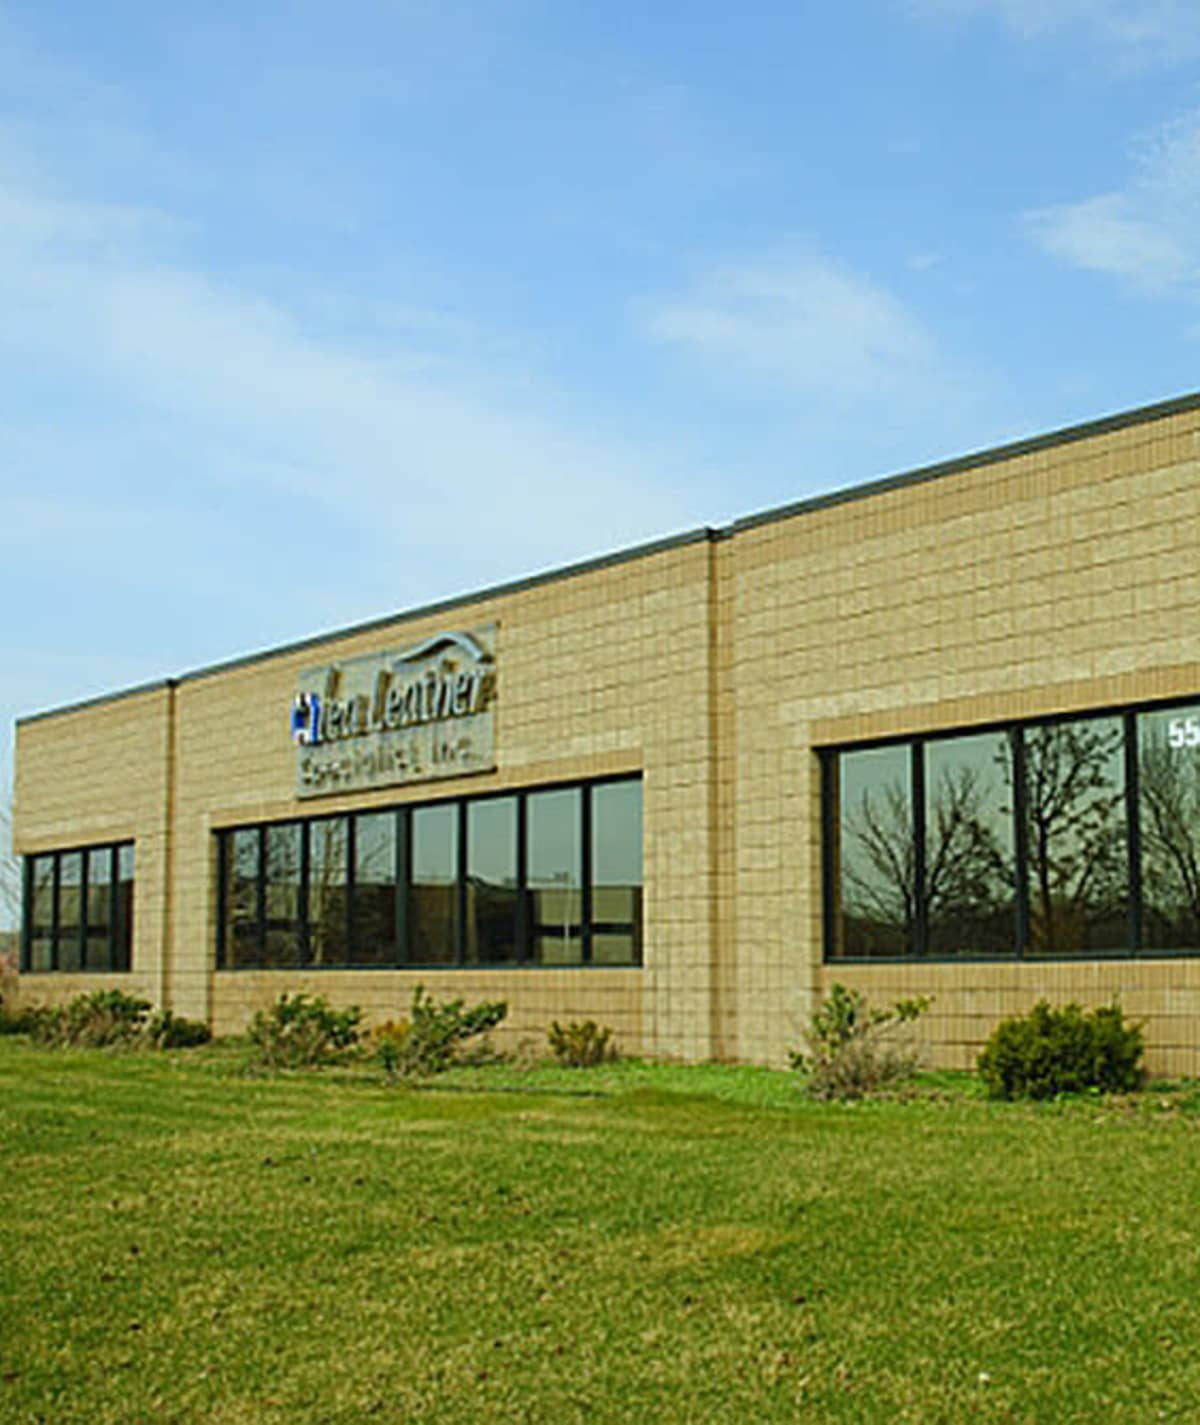 Contact for more information about Lyon Industrial Research Center in New Hudson, Michigan